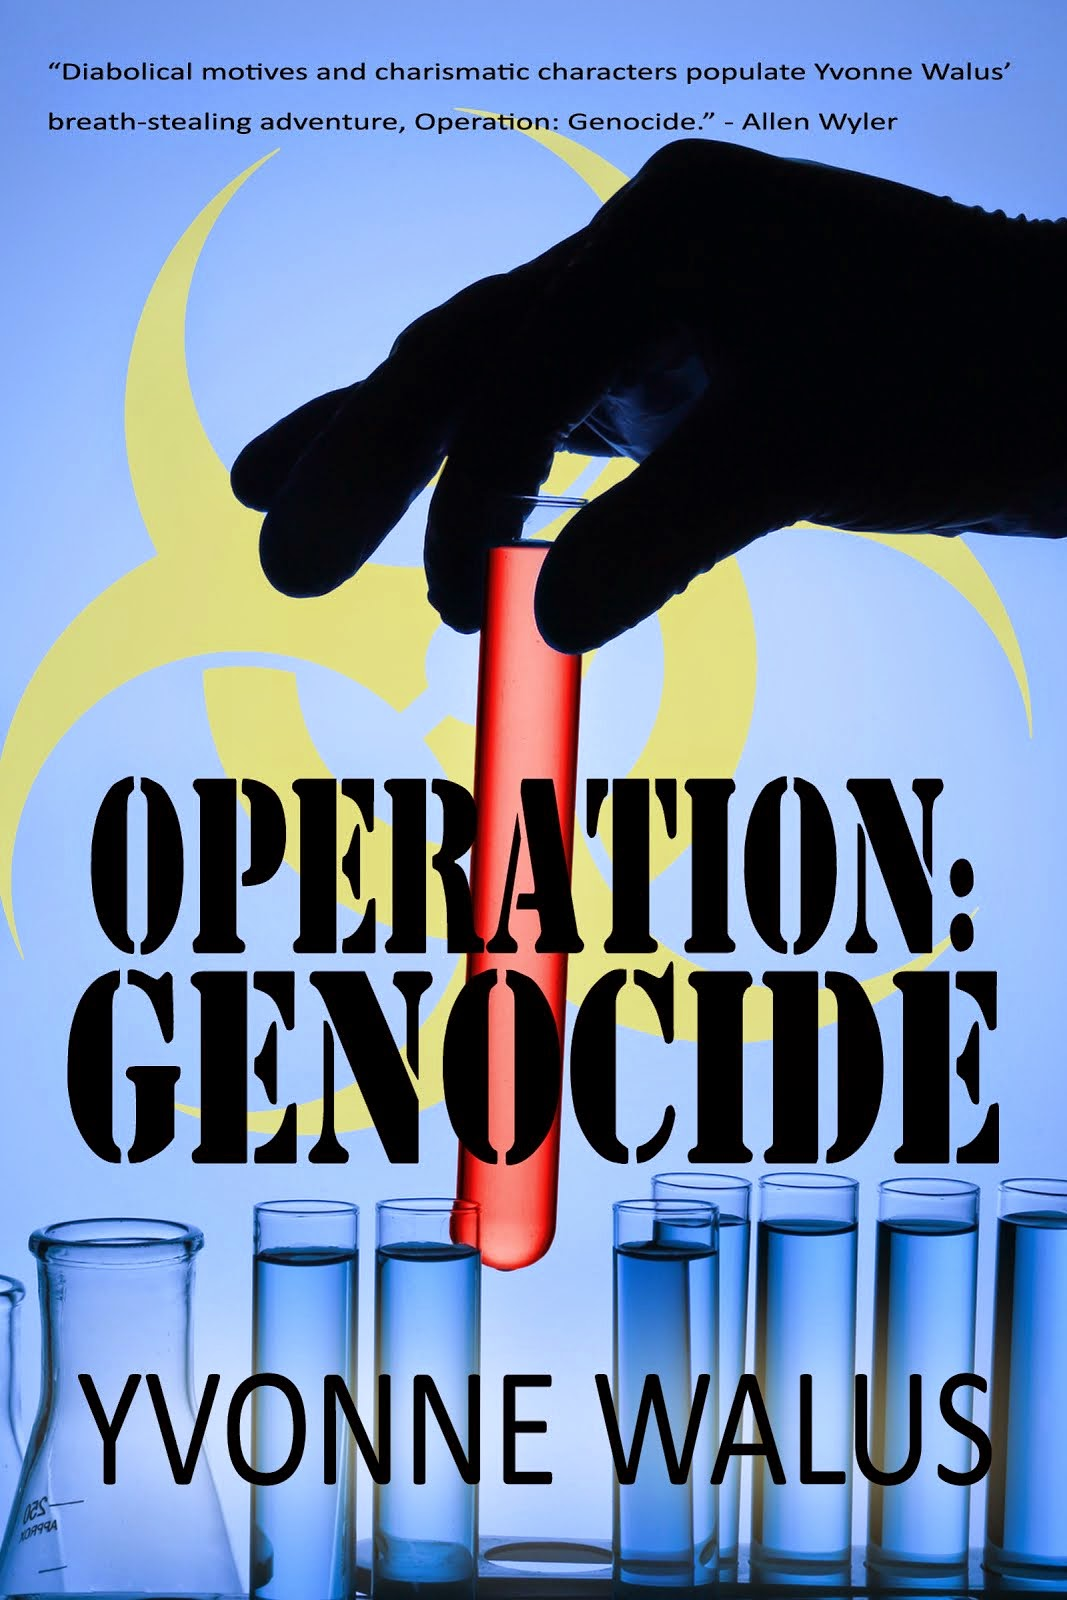 OPERATION: GENOCIDE